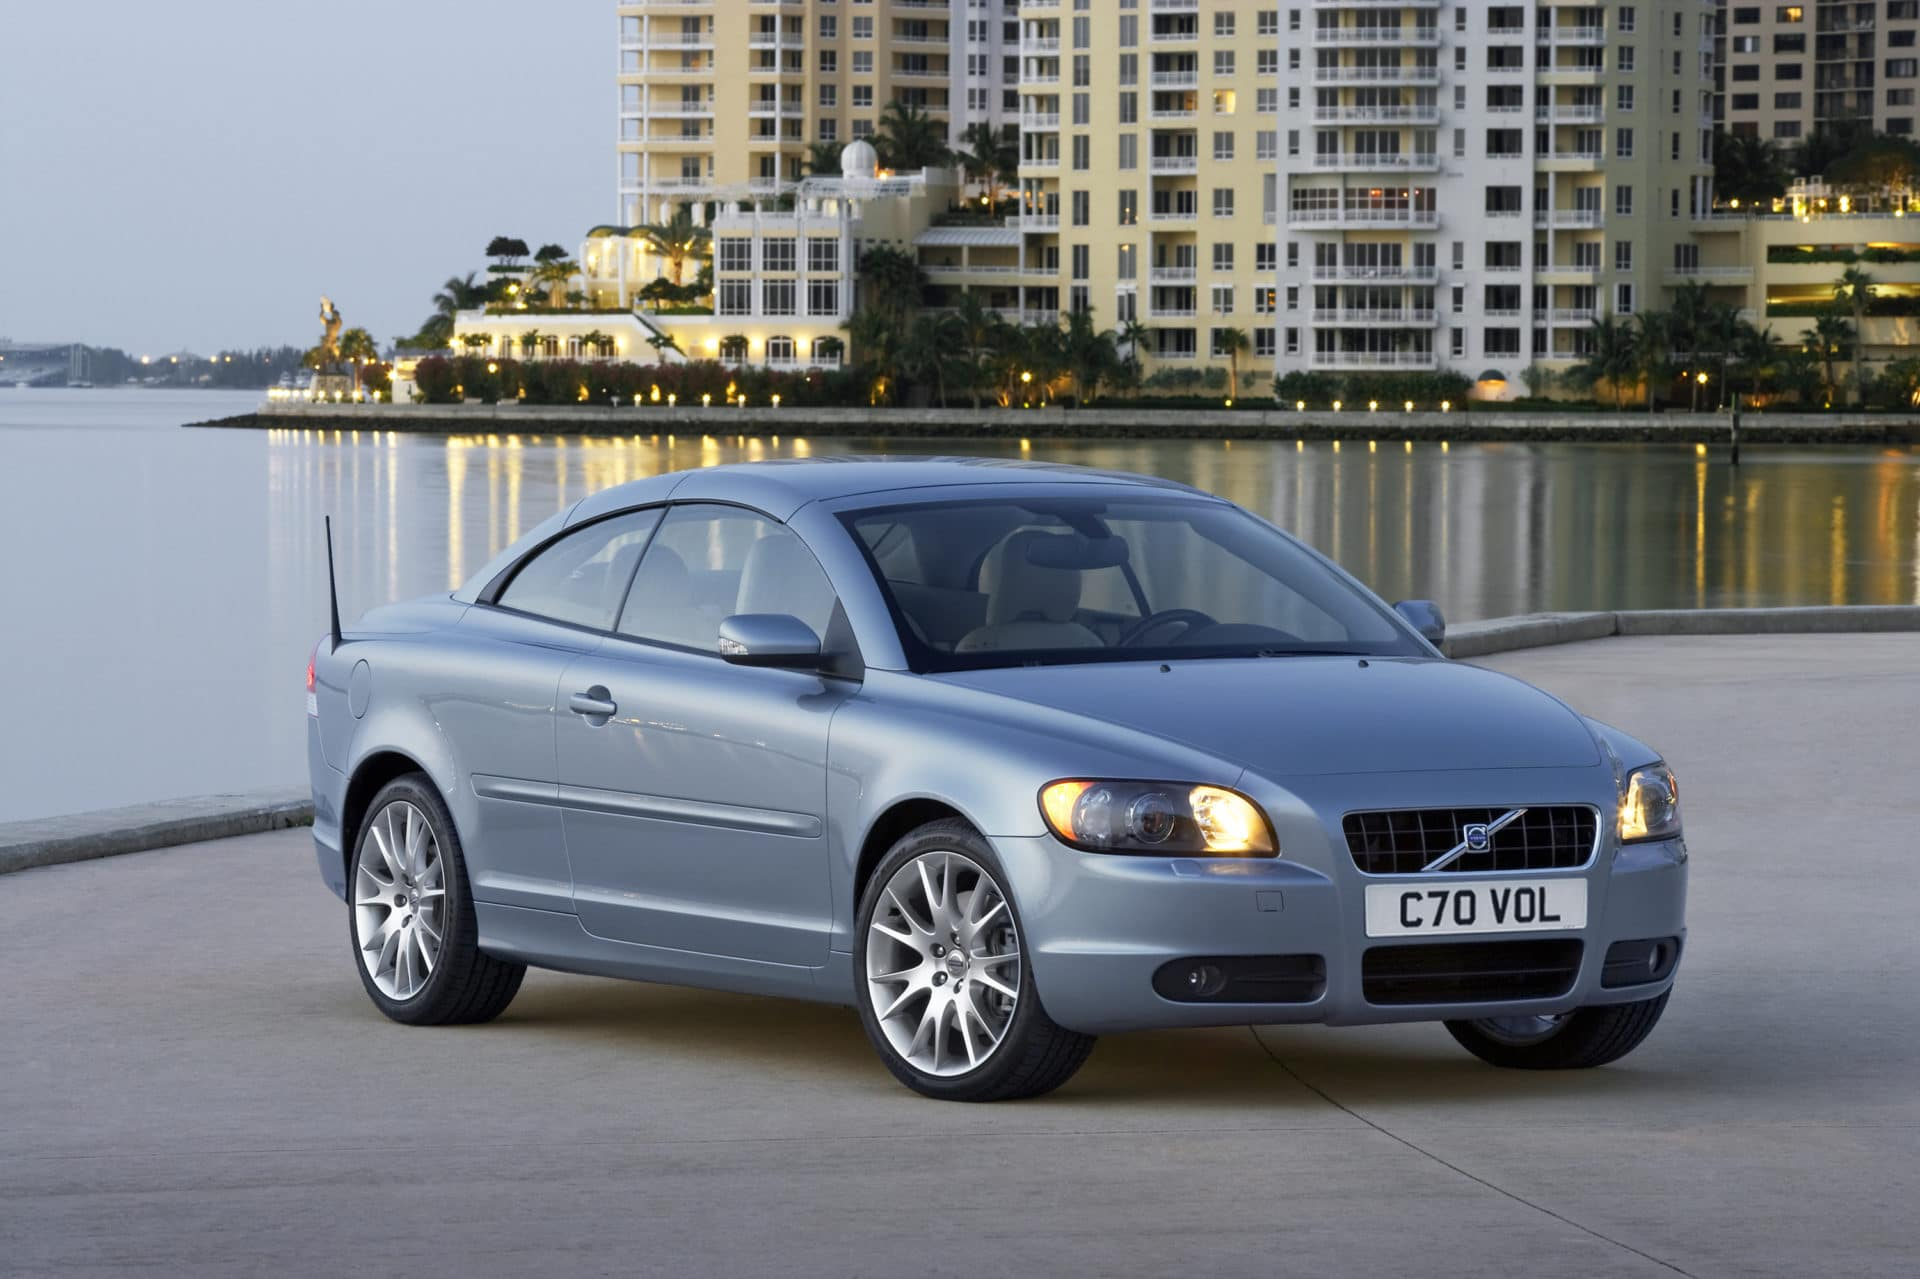 Volvo c70 buyers guide.